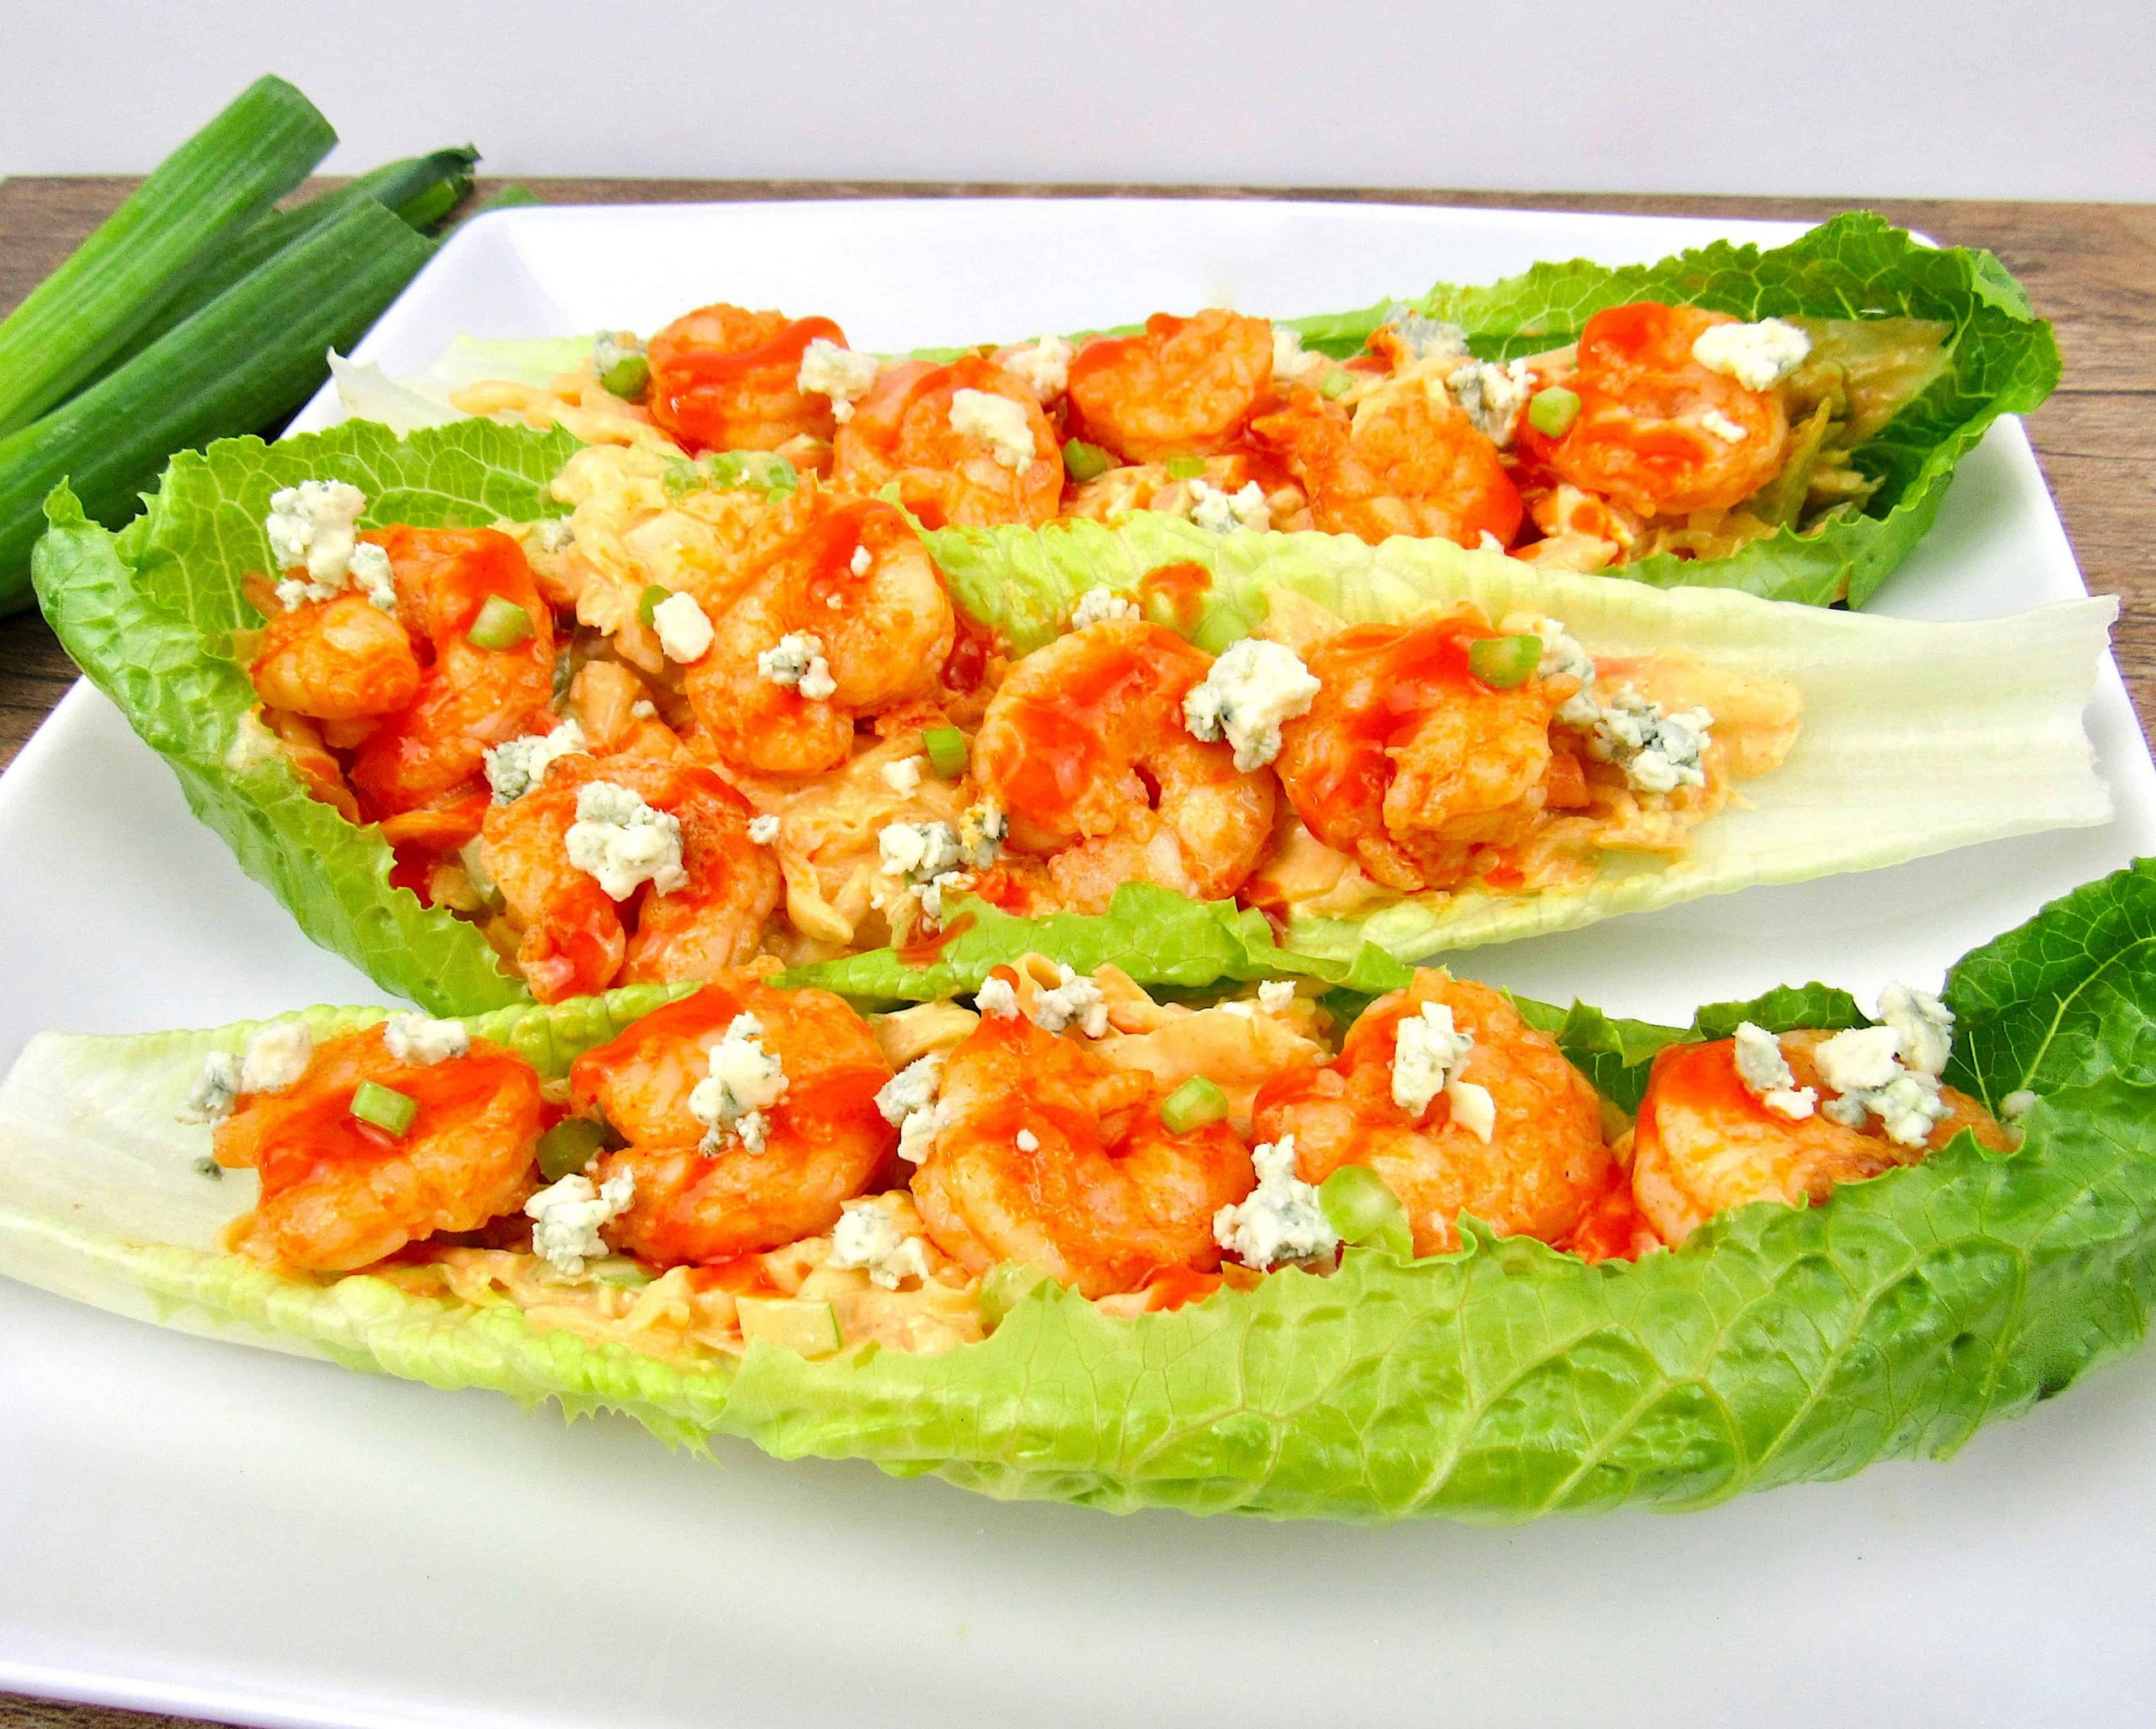 Buffalo Shrimp Keto  Easy Buffalo Shrimp Lettuce Wraps Keto Low Carb Keto